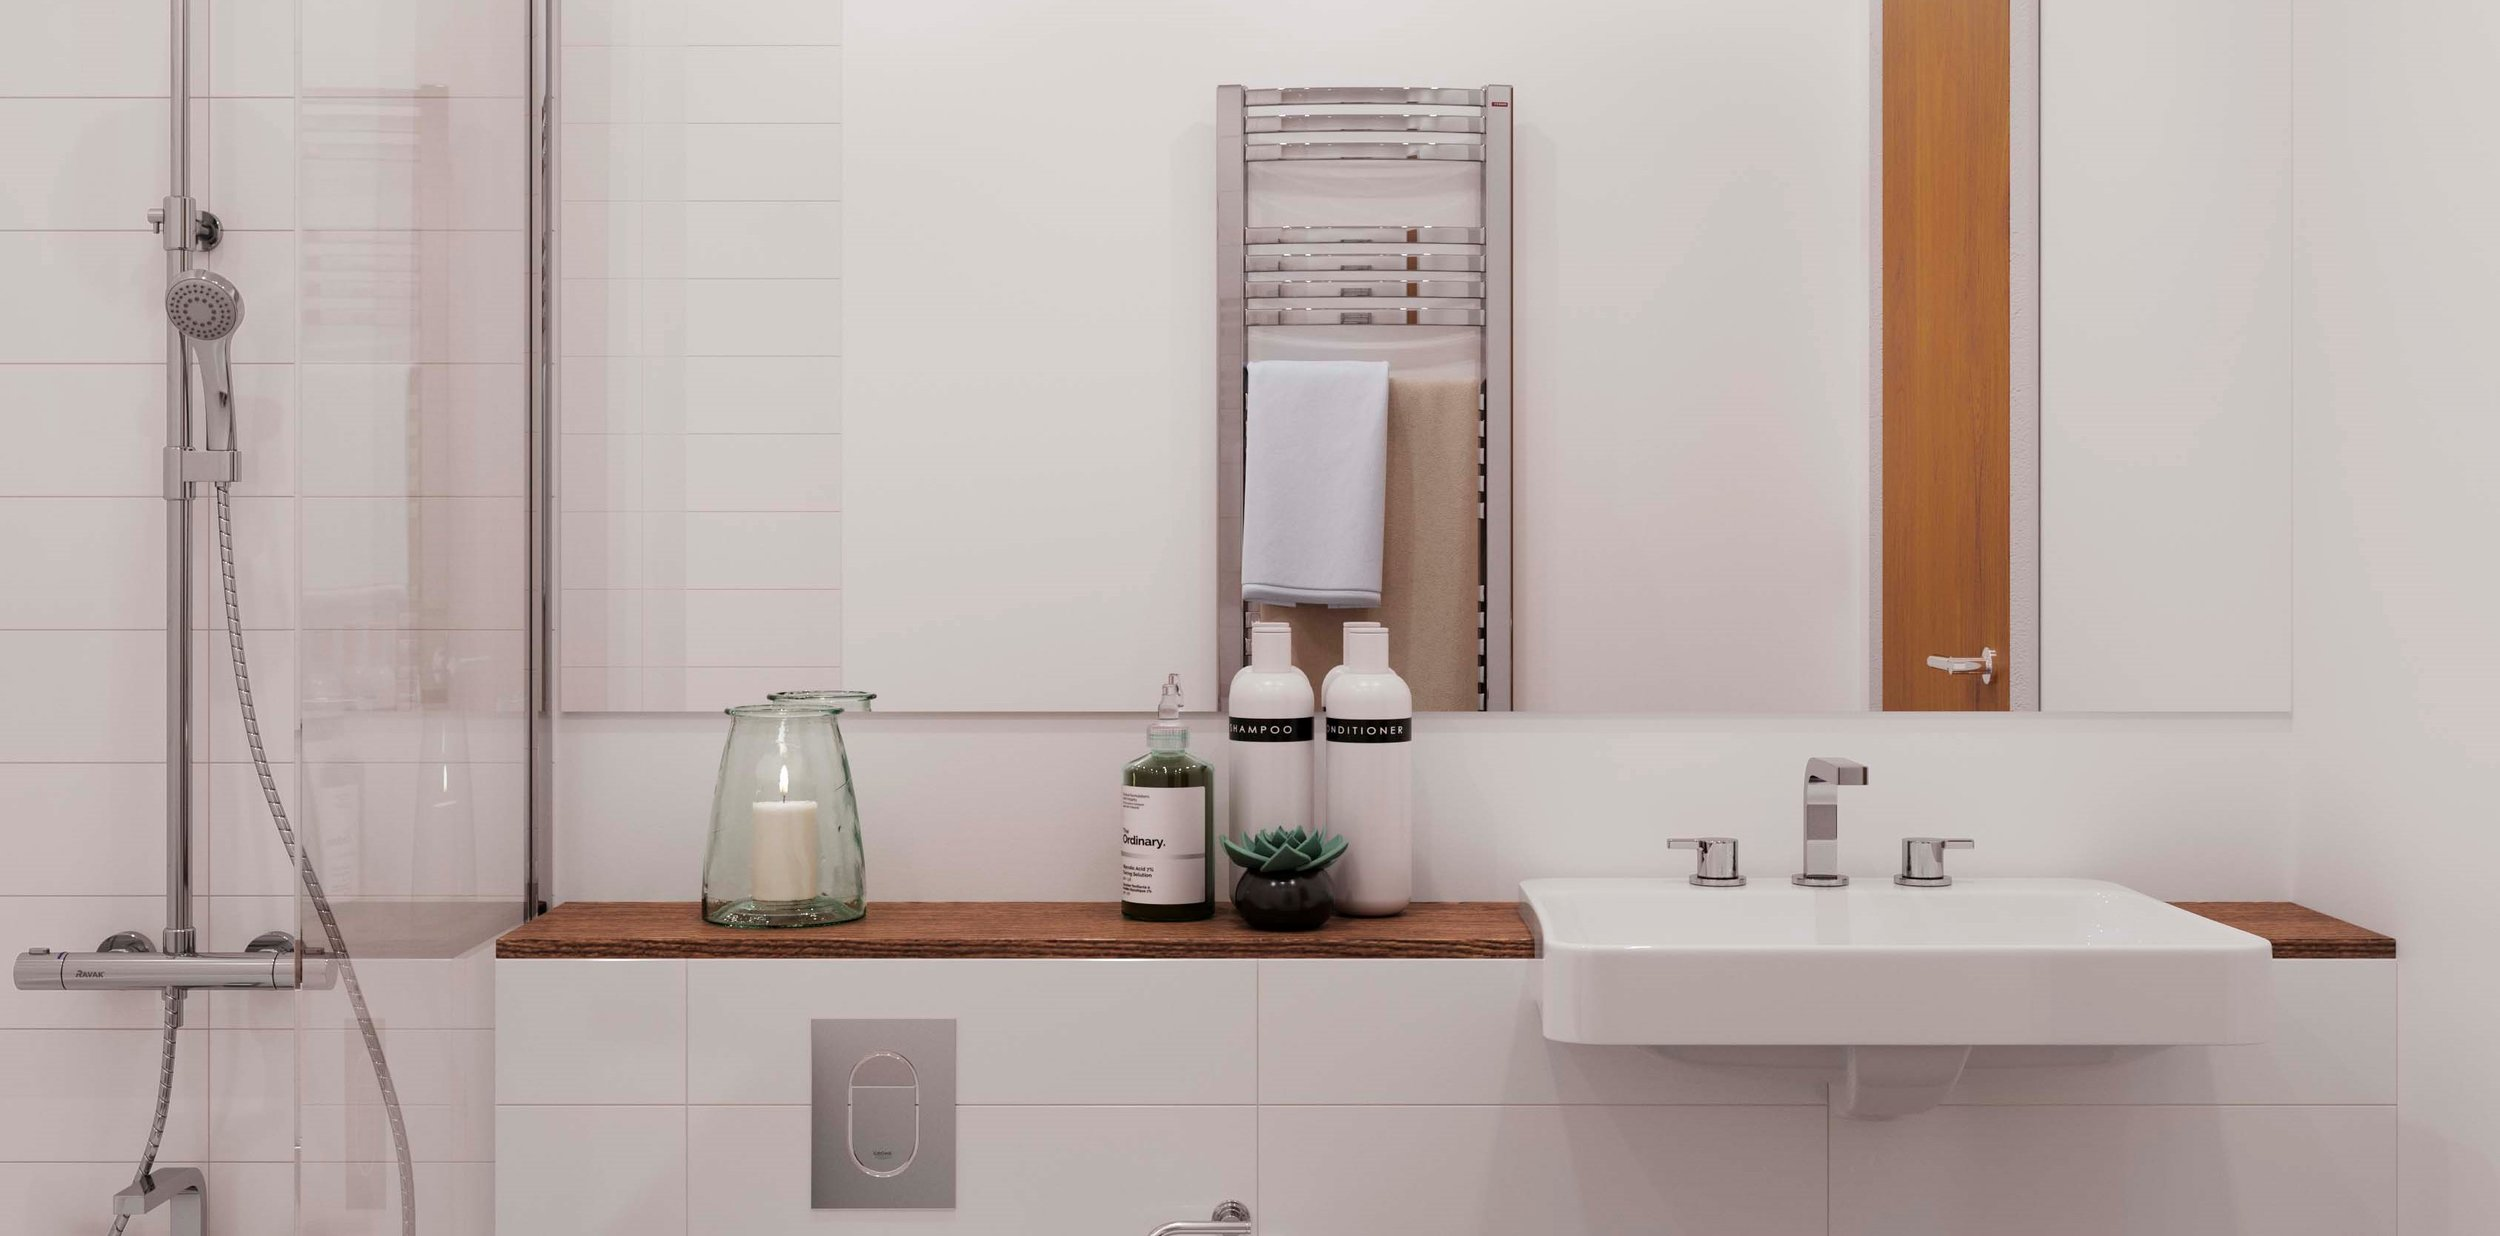 KBB - Bathroom Products CGI.jpg